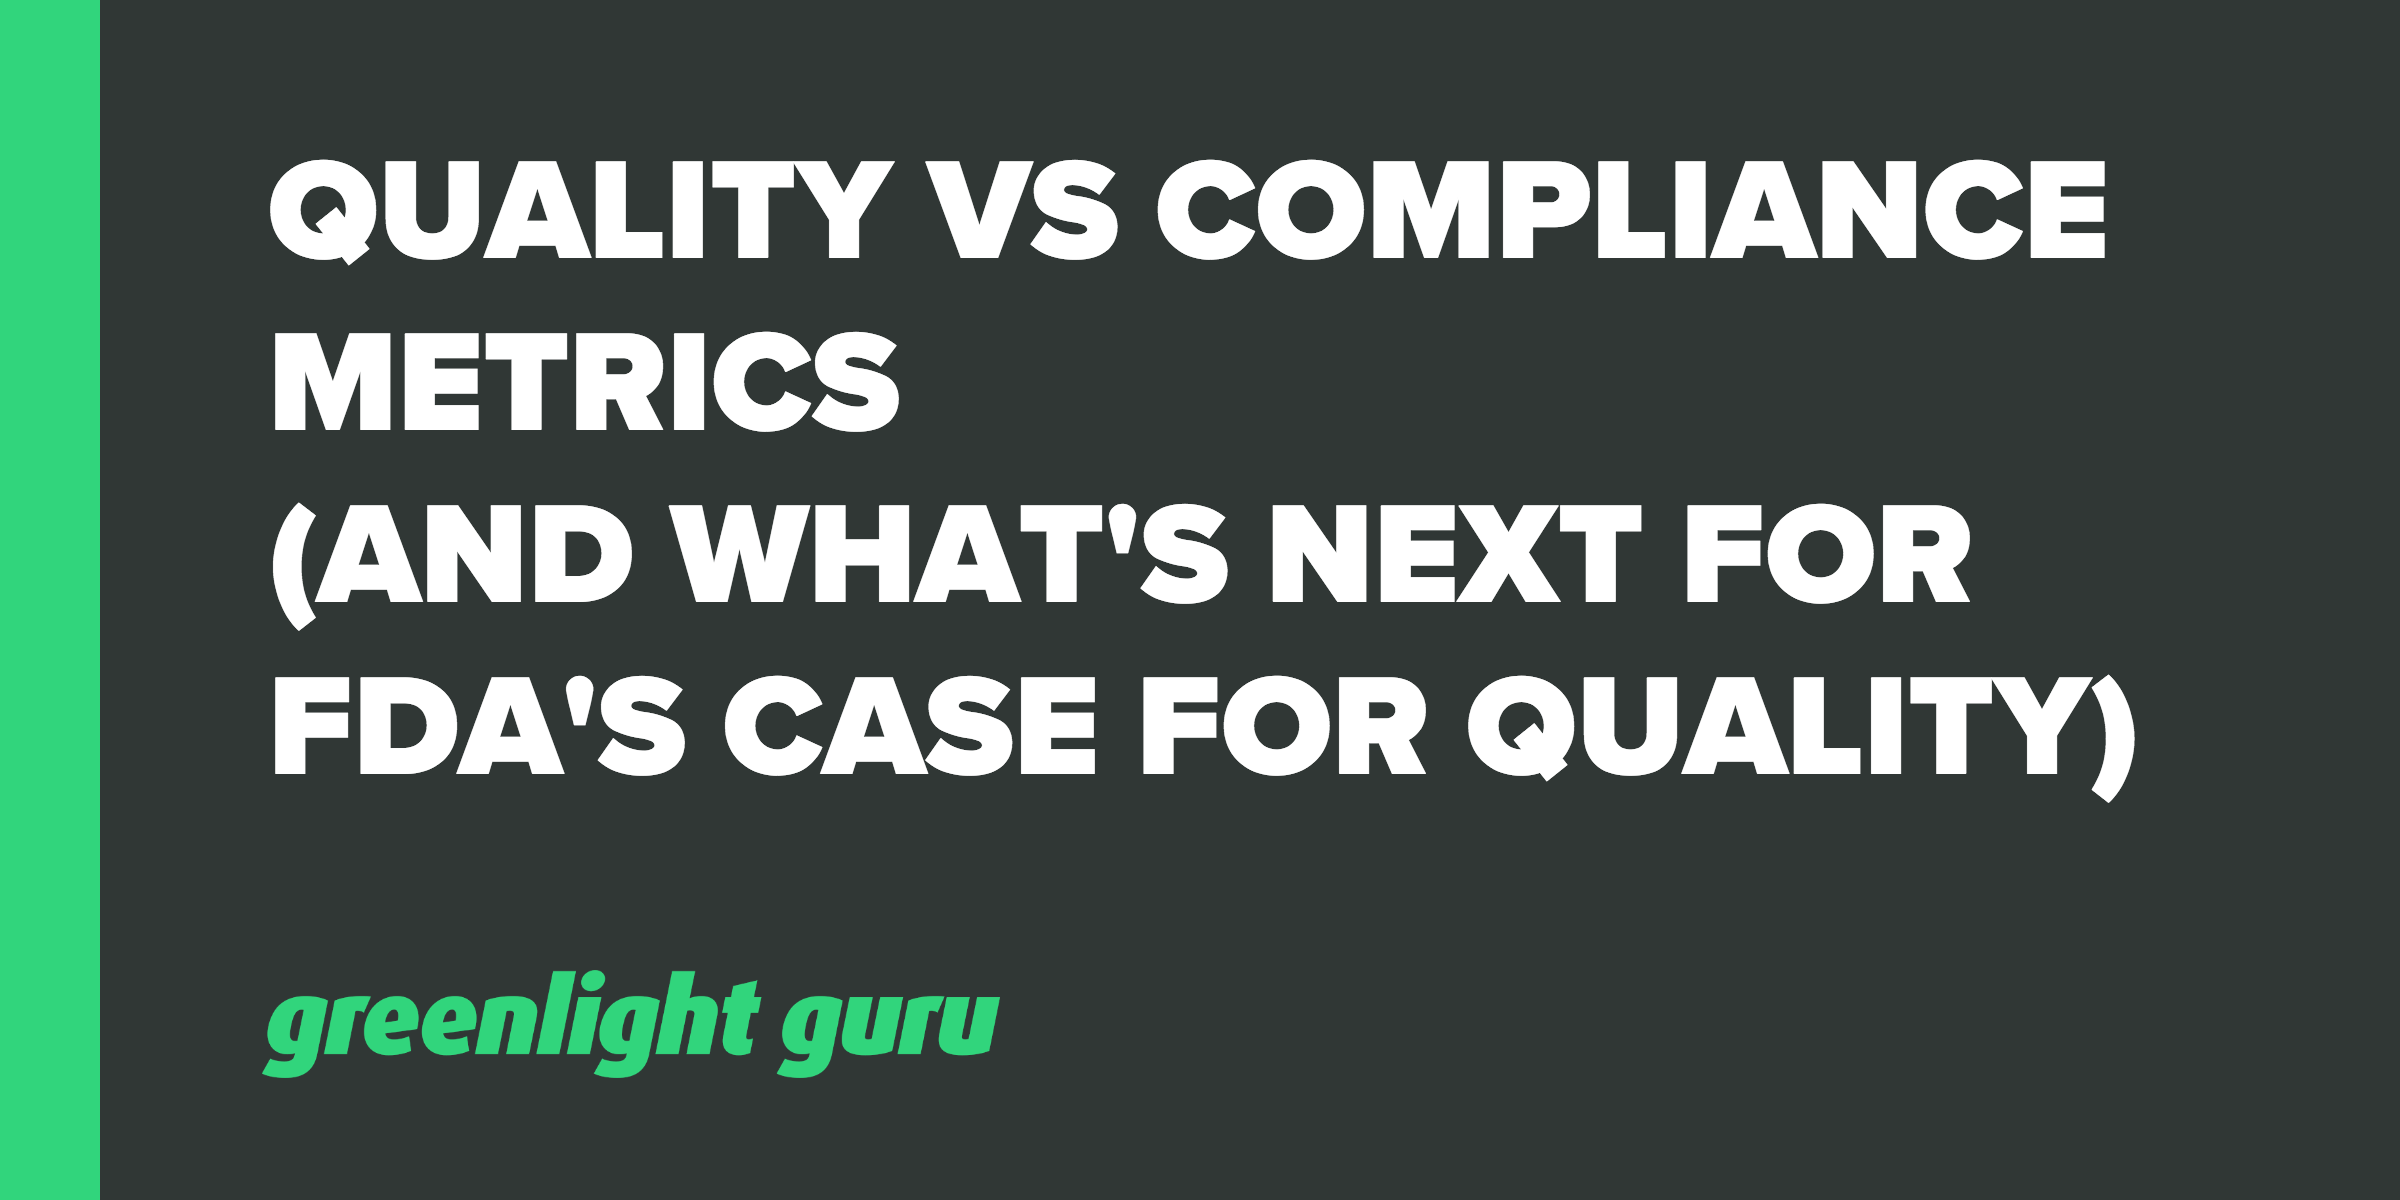 Quality vs. Compliance Metrics